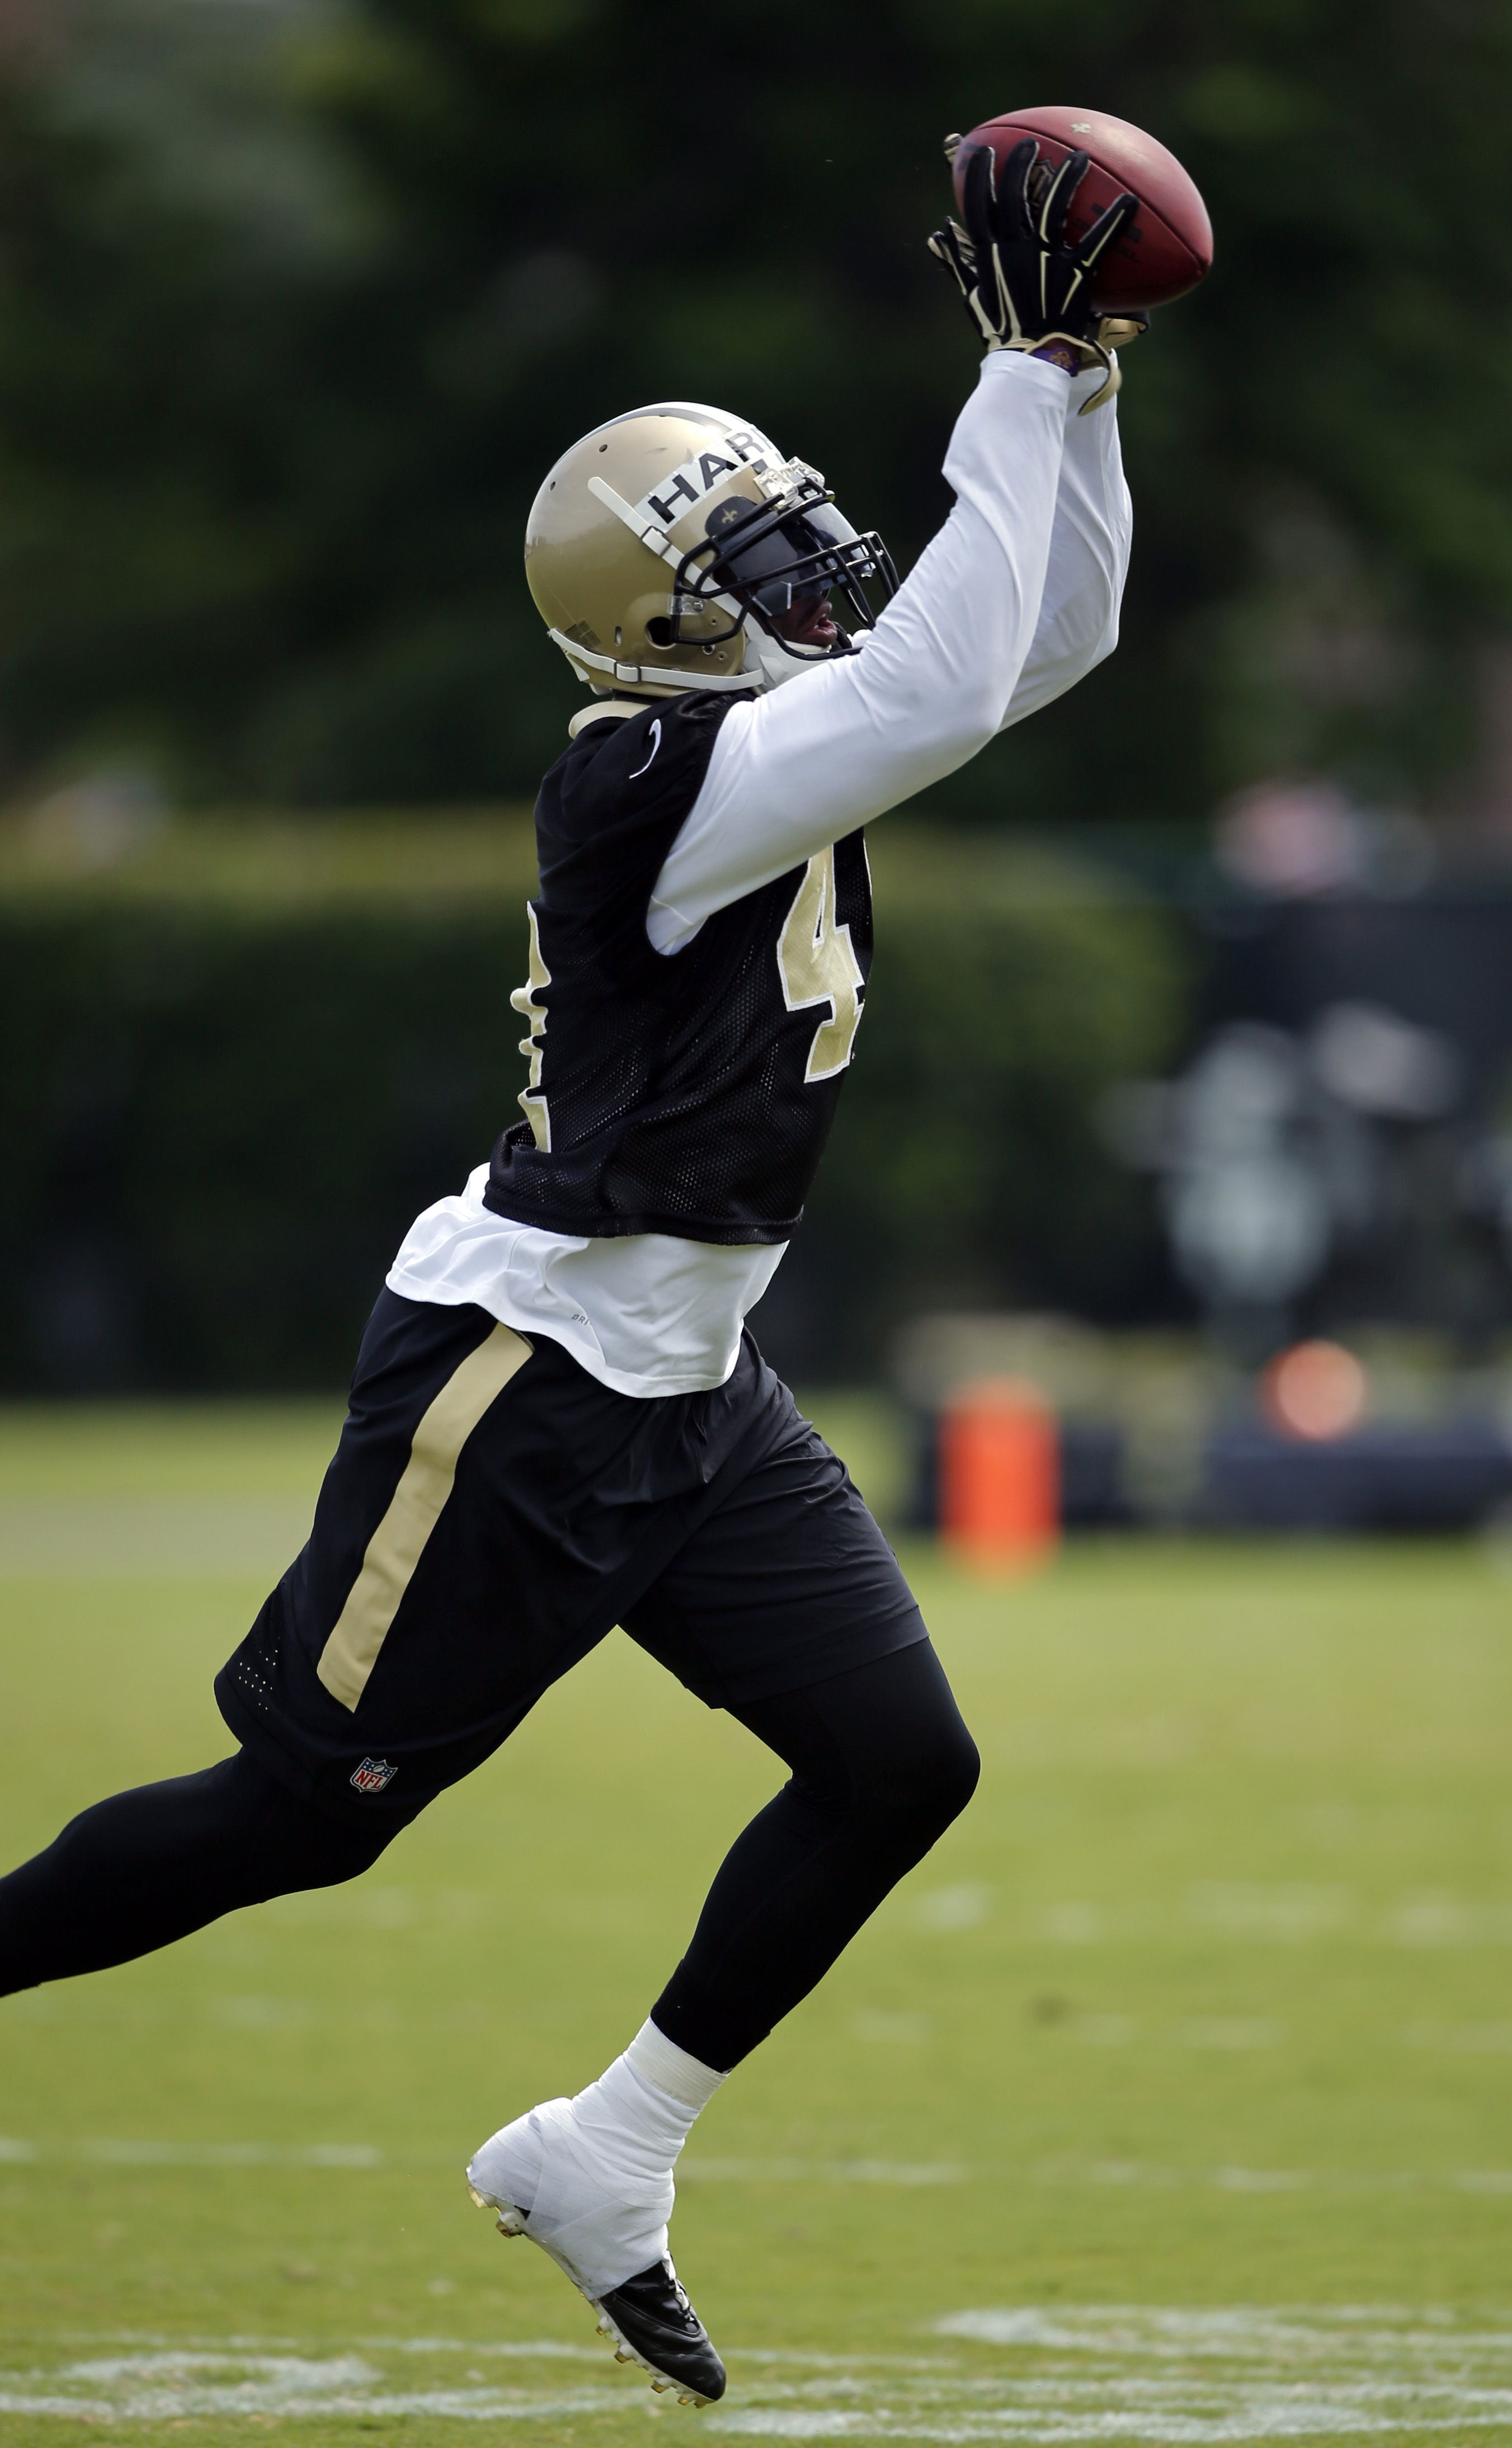 New Orleans Saints safety Roman Harper (41) goes through drills during an NFL football practice in Metairie, La., Thursday, June 9, 2016. (AP Photo/Gerald Herbert)